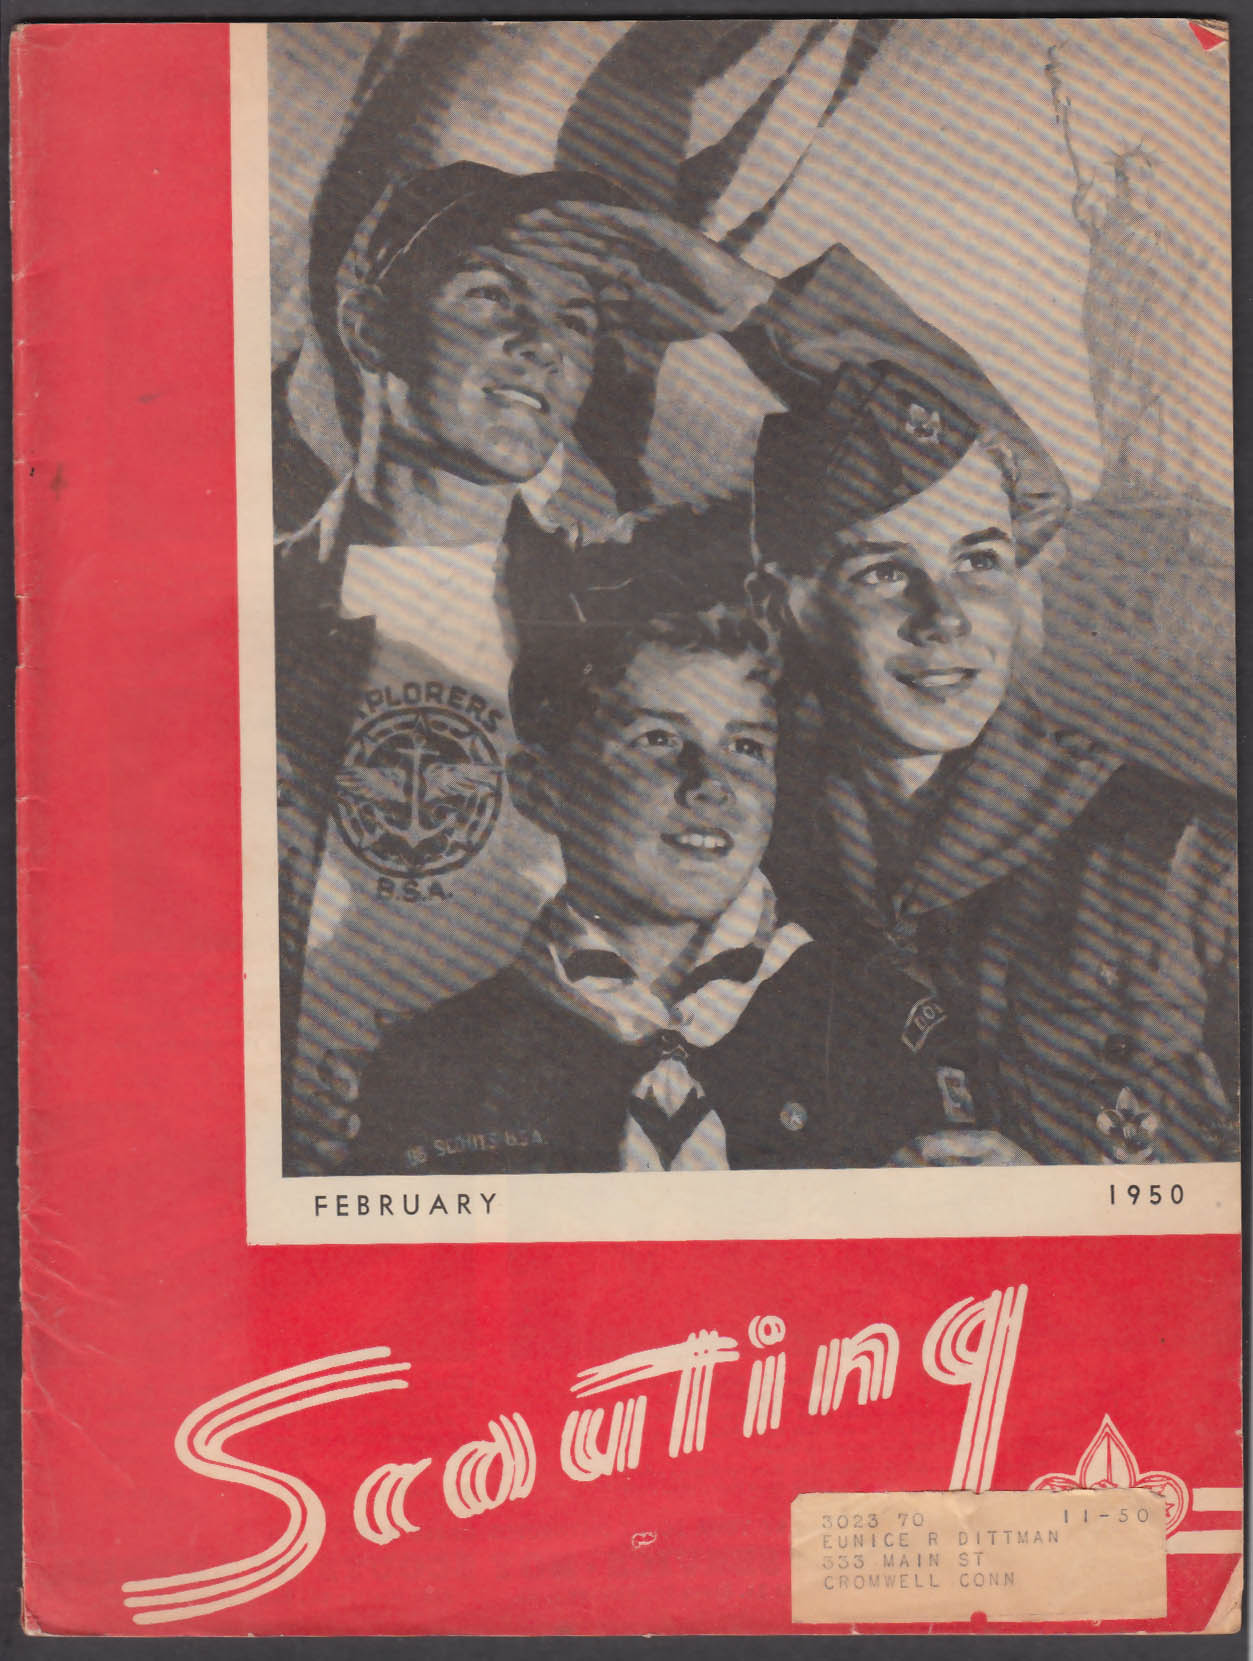 SCOUTING Boy Scouts of America Packing for Camp ++ 2 1950